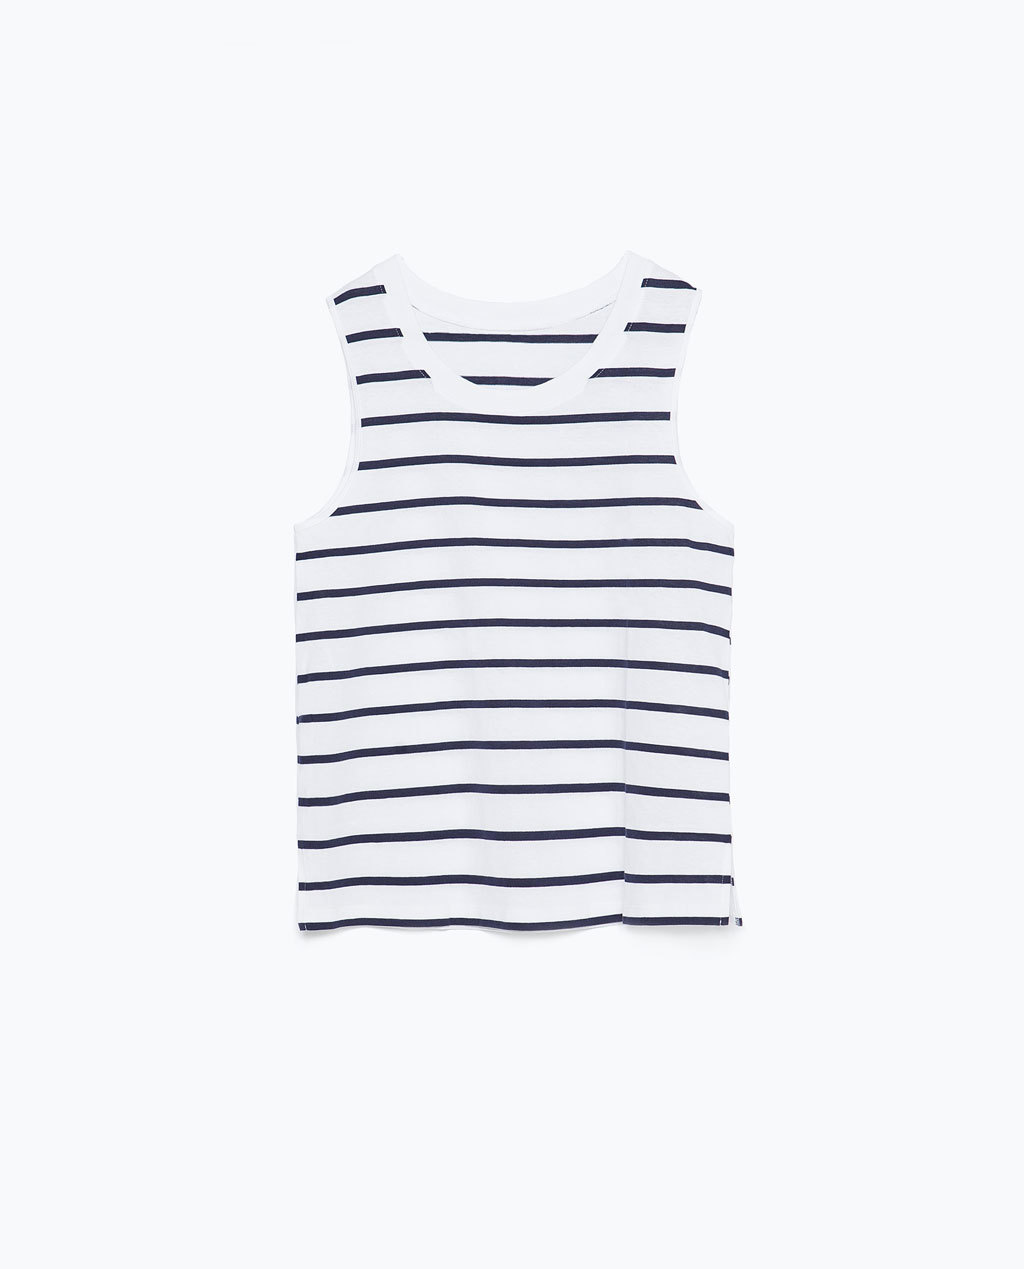 Cotton Strappy Tank Top - neckline: round neck; sleeve style: standard vest straps/shoulder straps; pattern: horizontal stripes; style: vest top; predominant colour: white; secondary colour: navy; occasions: casual; length: standard; fibres: cotton - 100%; fit: straight cut; sleeve length: sleeveless; pattern type: fabric; pattern size: standard; texture group: jersey - stretchy/drapey; season: s/s 2015; multicoloured: multicoloured; wardrobe: basic